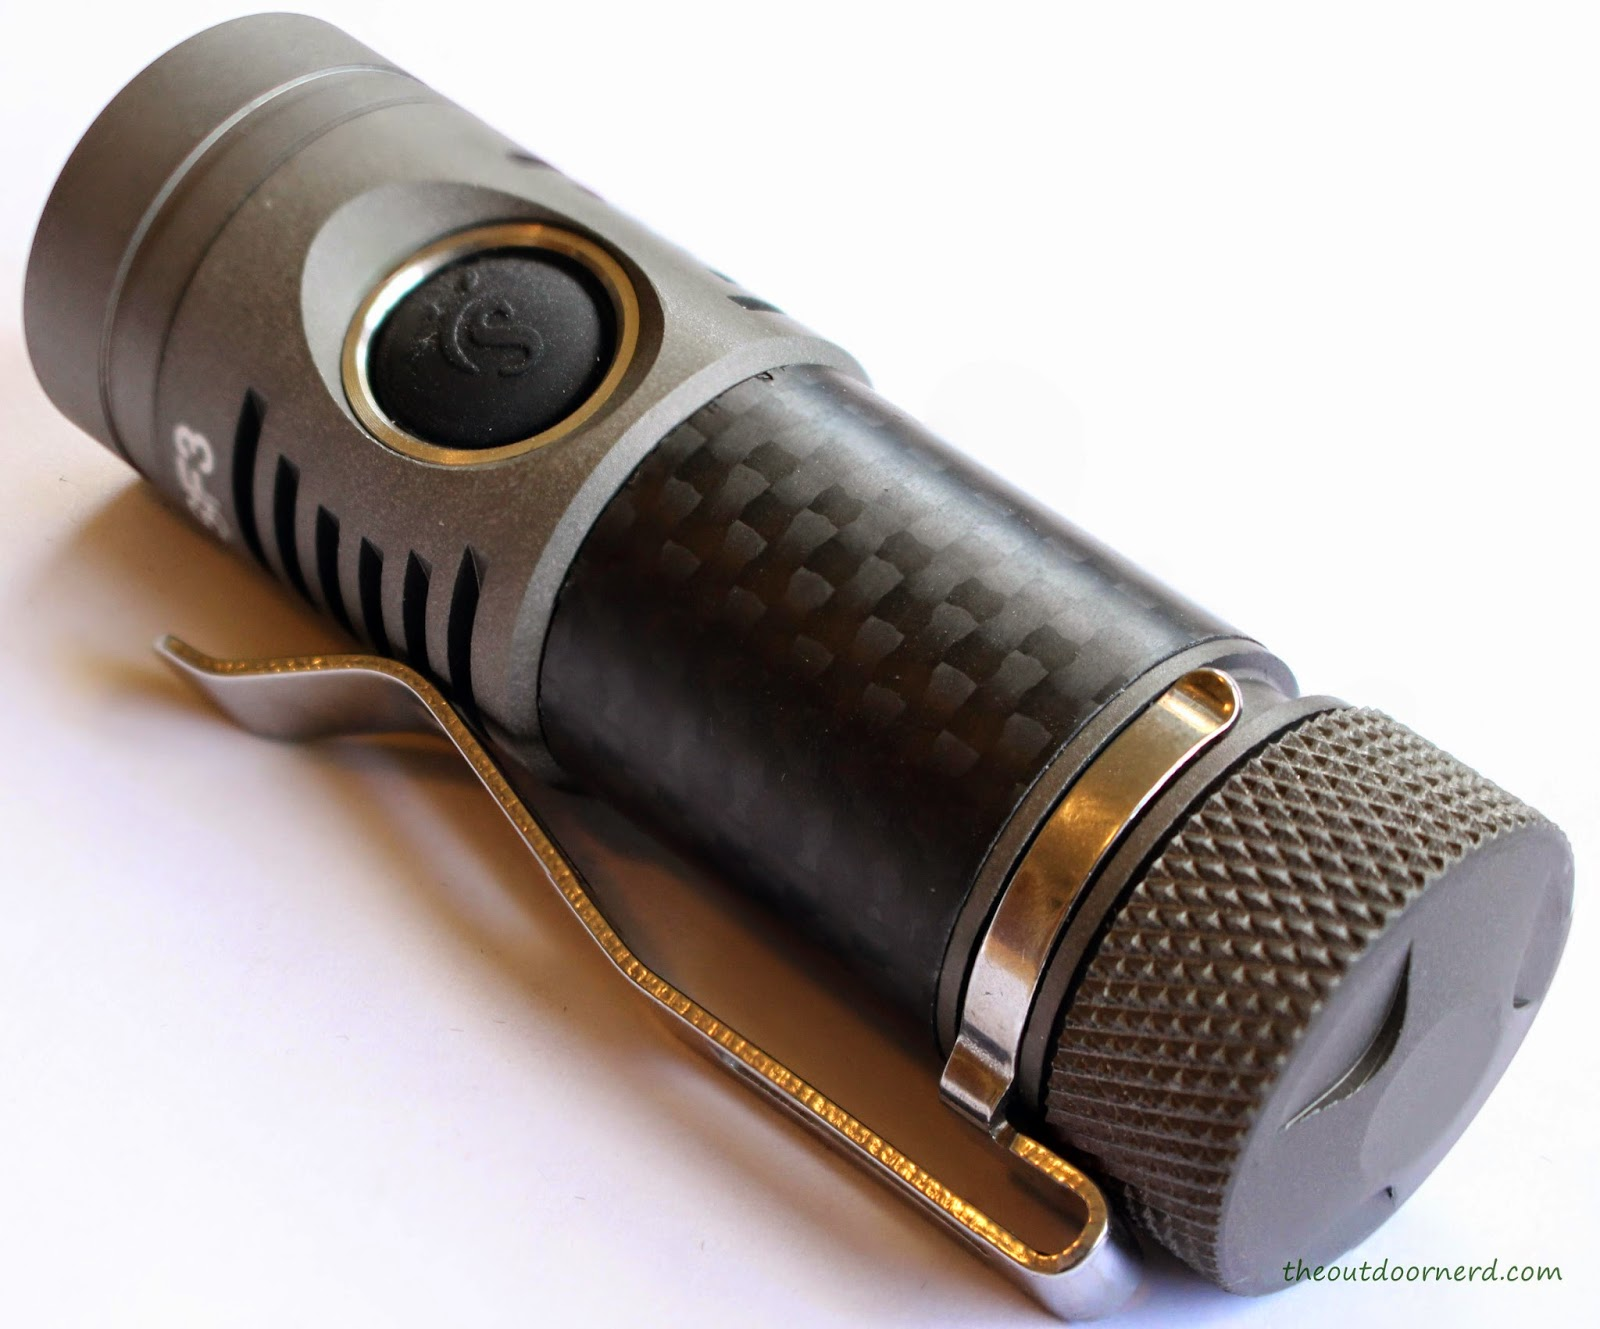 Spark SF3 1xCR123A Flashlight Product View 3